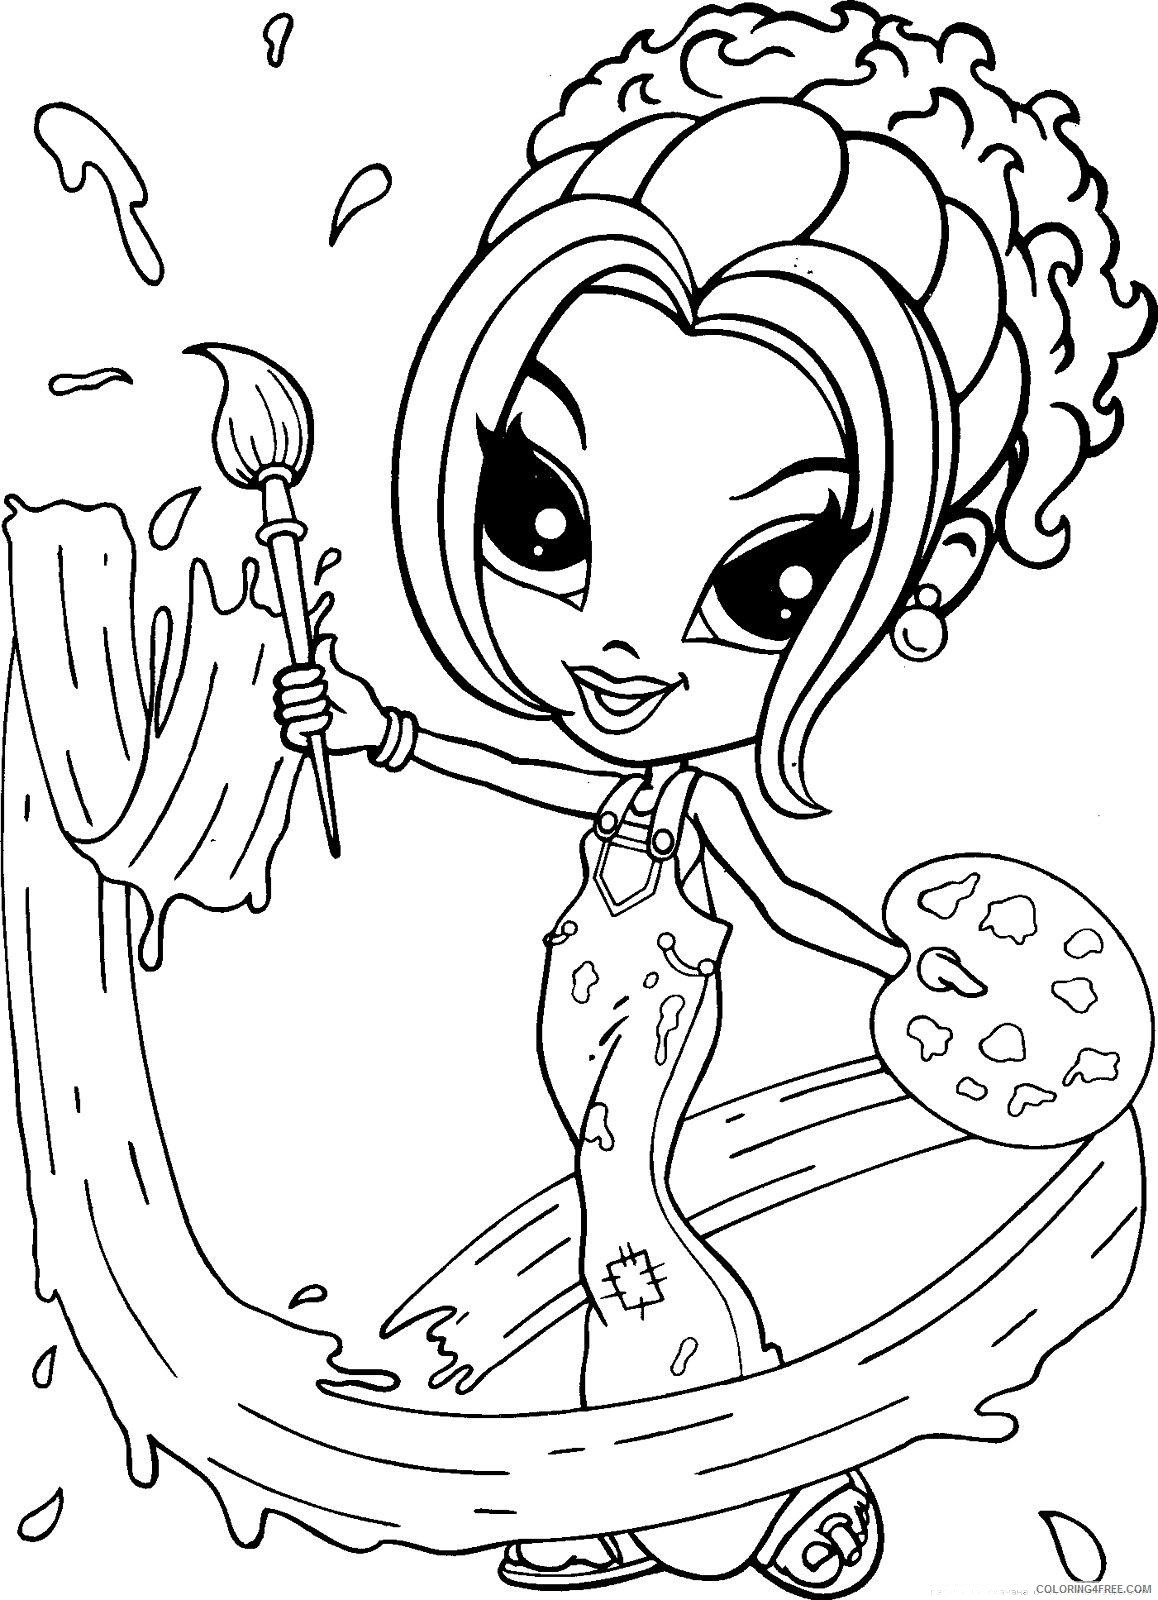 lisa frank coloring pages painter girl Coloring4free